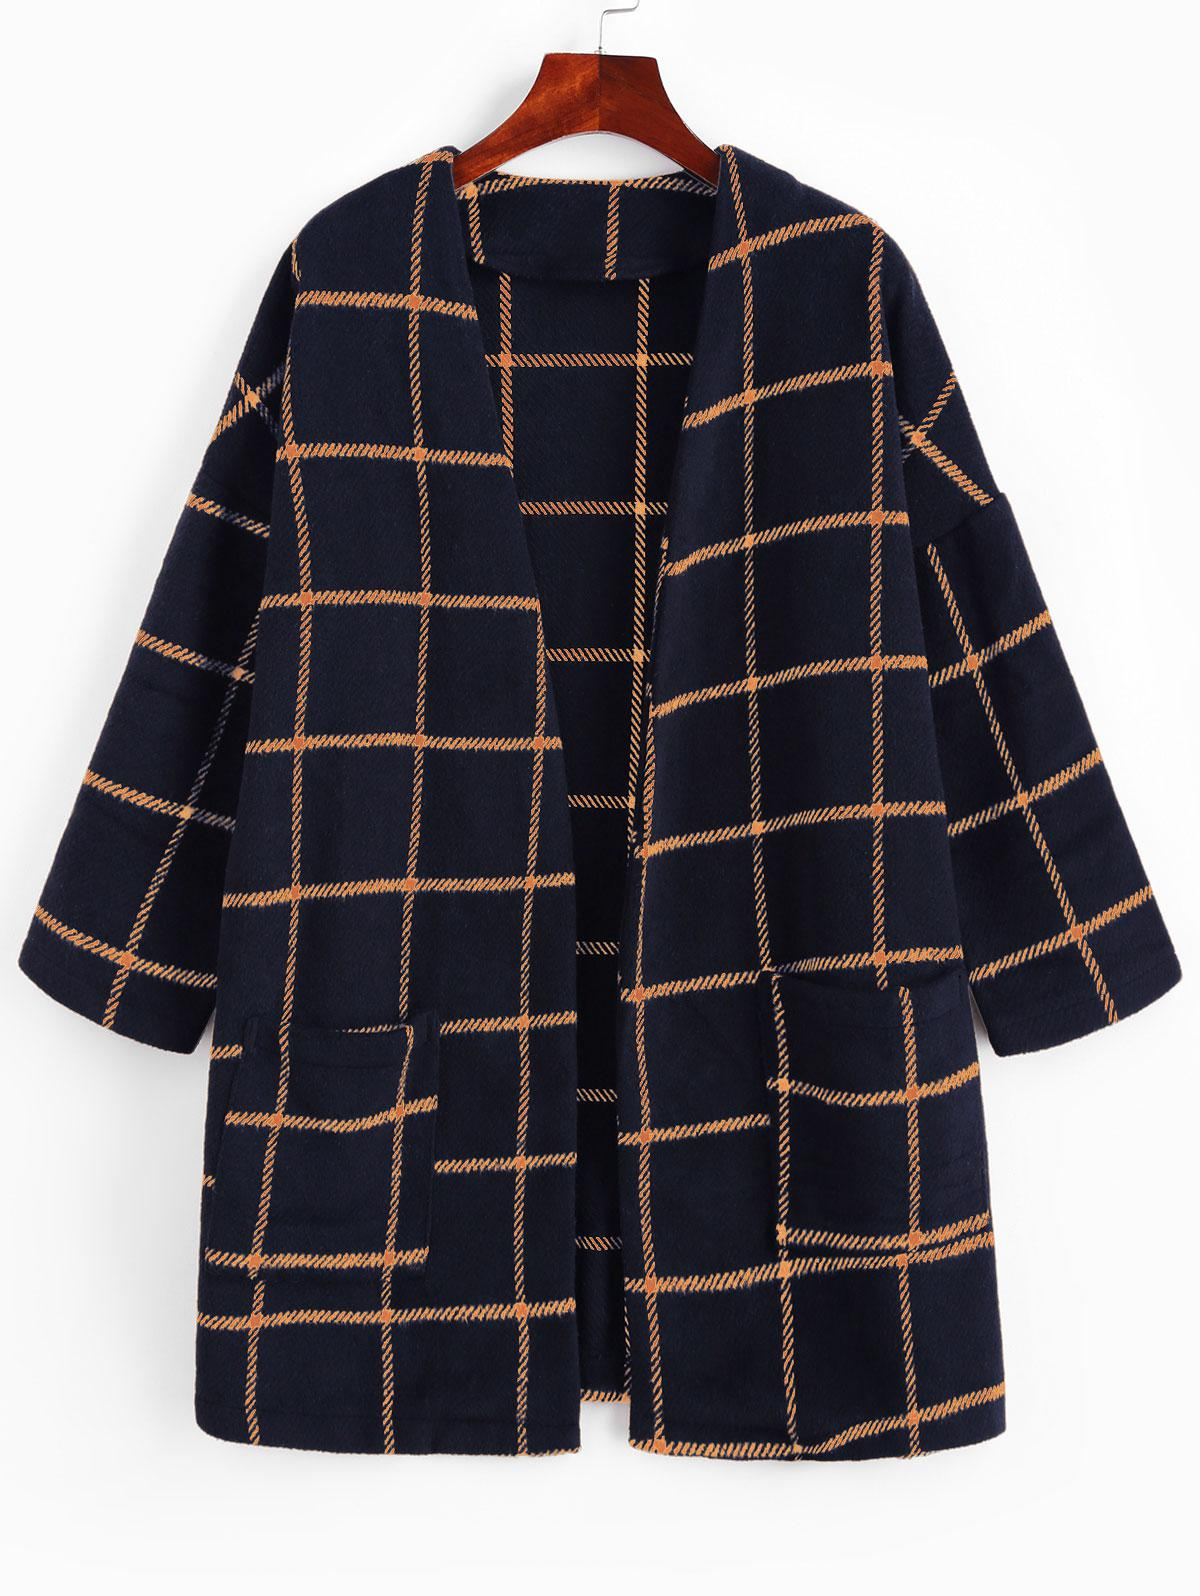 ZAFUL Patched Pockets Open Front Plaid Longline Coat